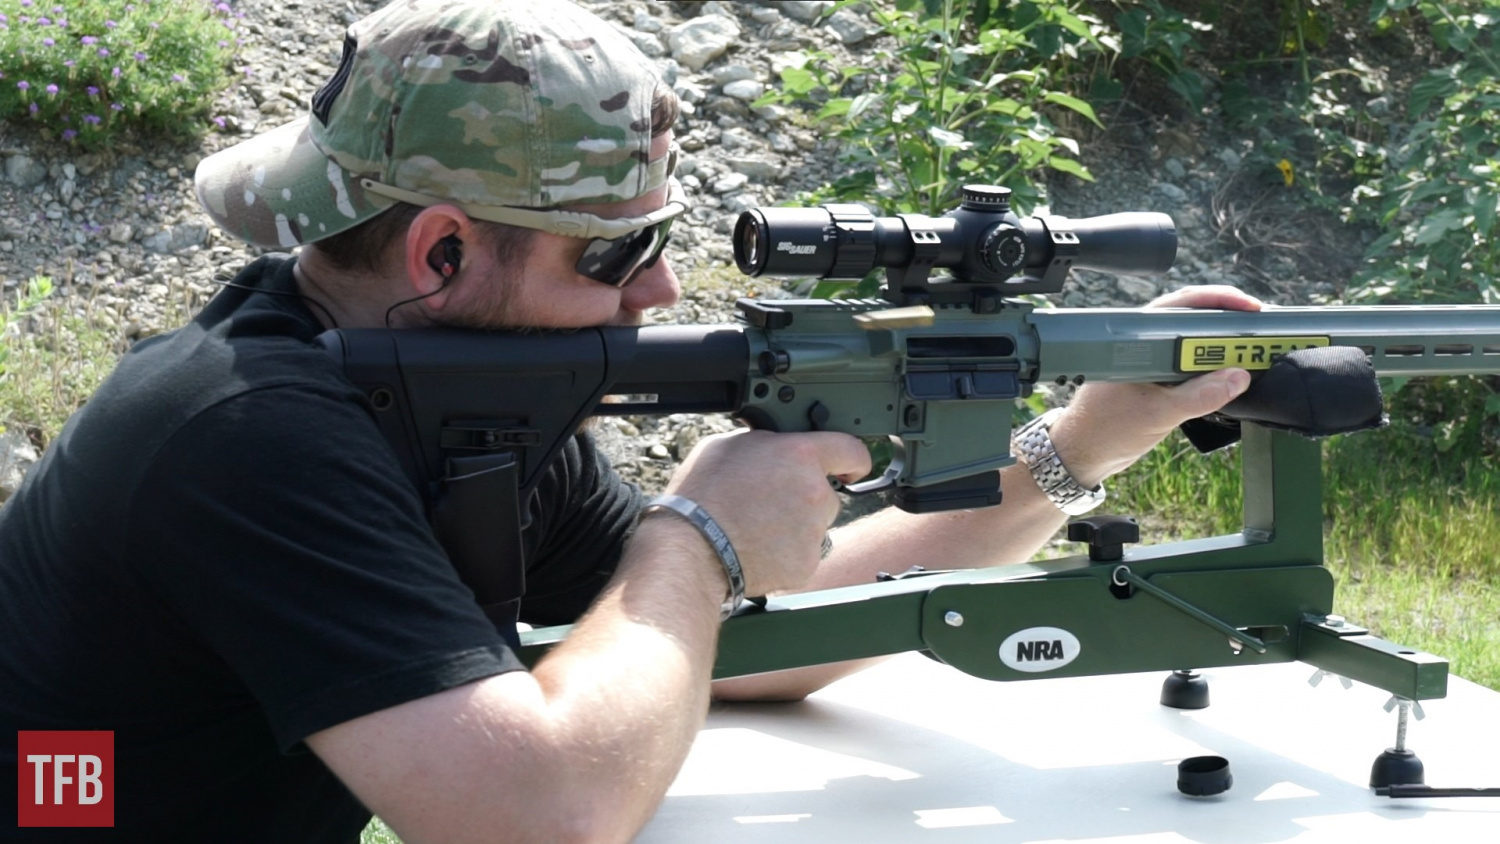 Zeroing the SIERRA3BDX 2.5-8x32mm scope that SIG sent along with the rifle for our testing purposes.